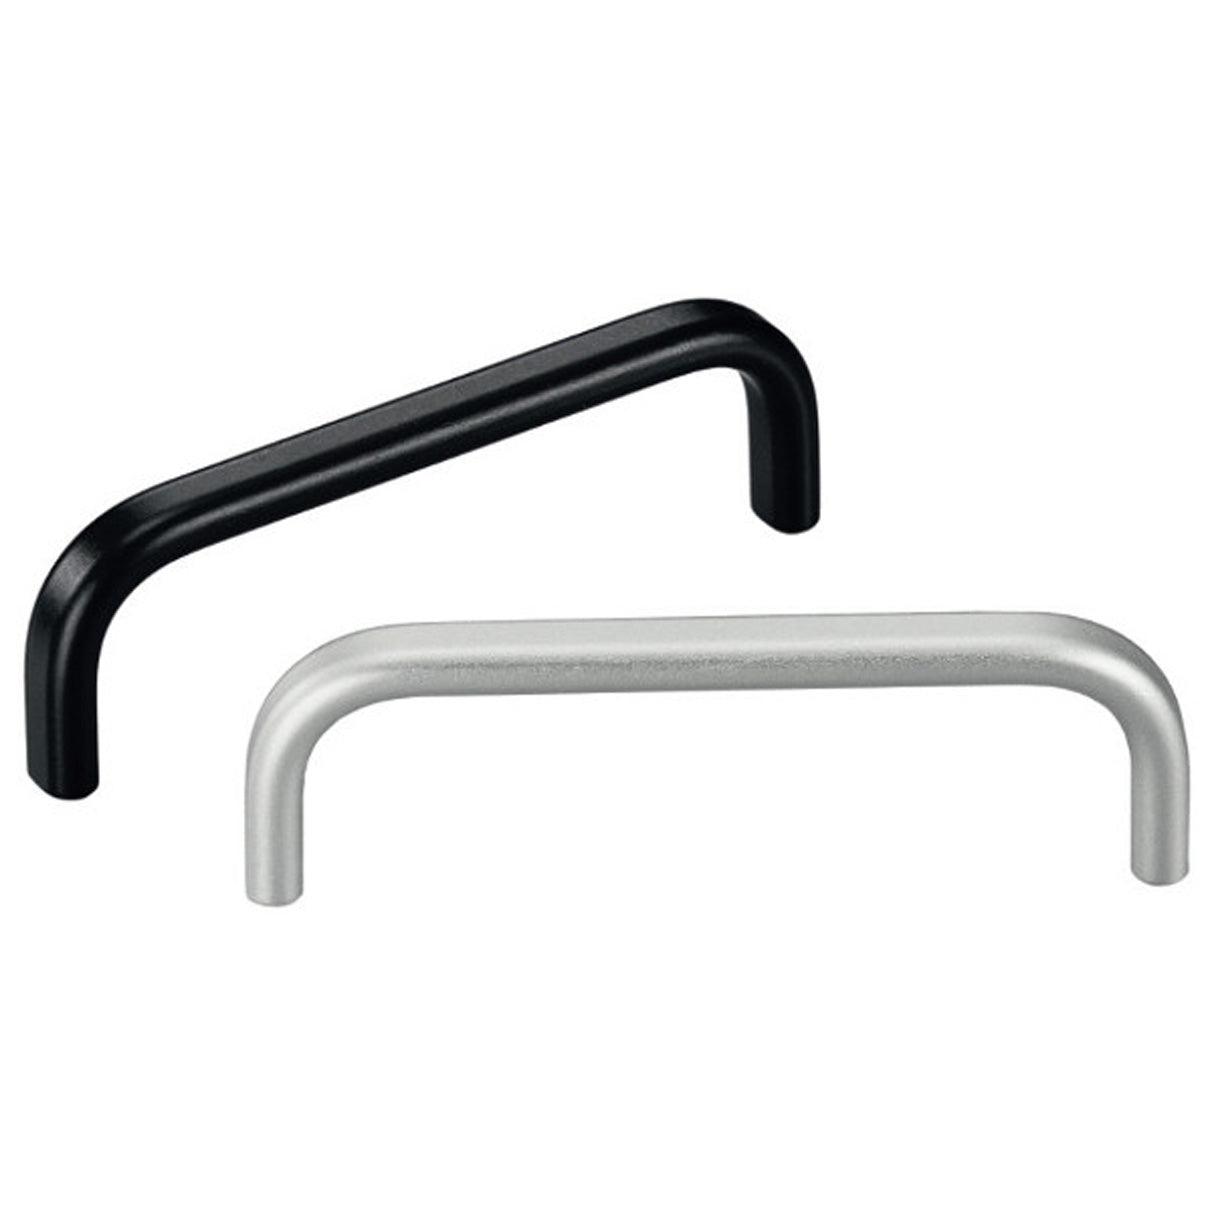 Aluminium Handle Oval Profile